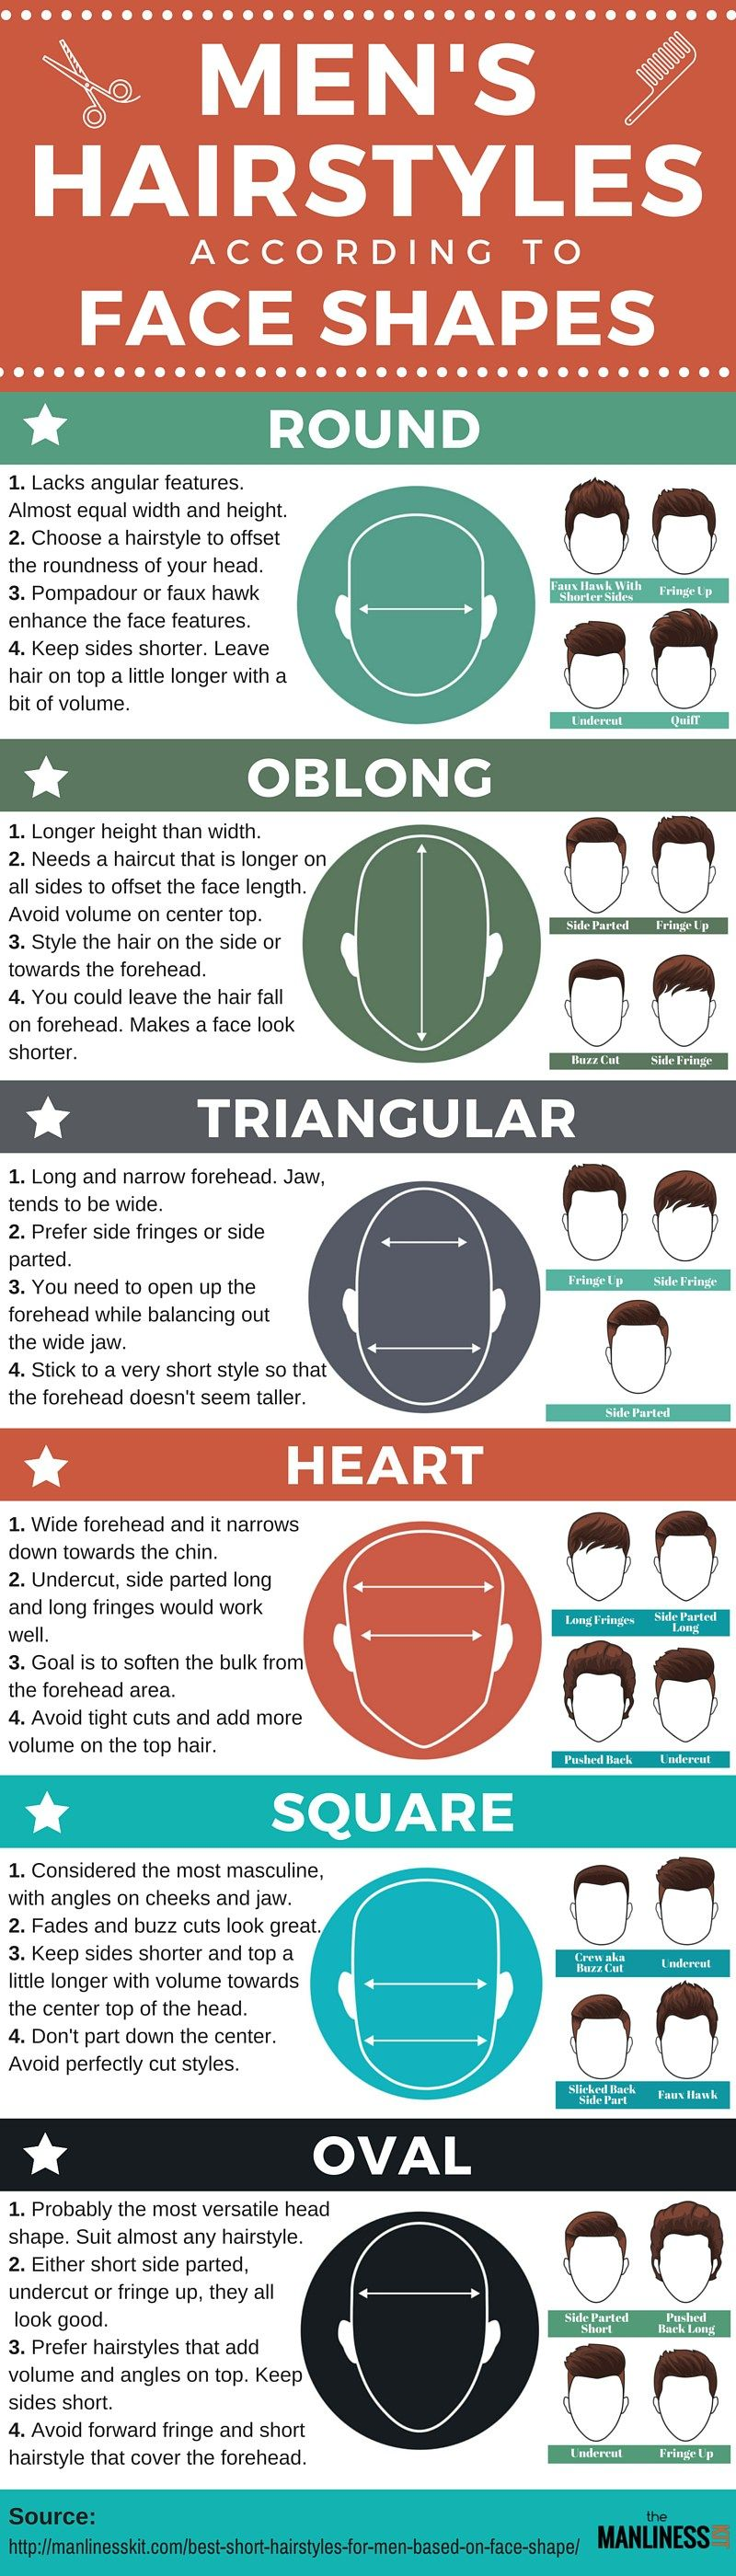 Mens haircuts short sides long top the best short hairstyles for men based on face shape the goto